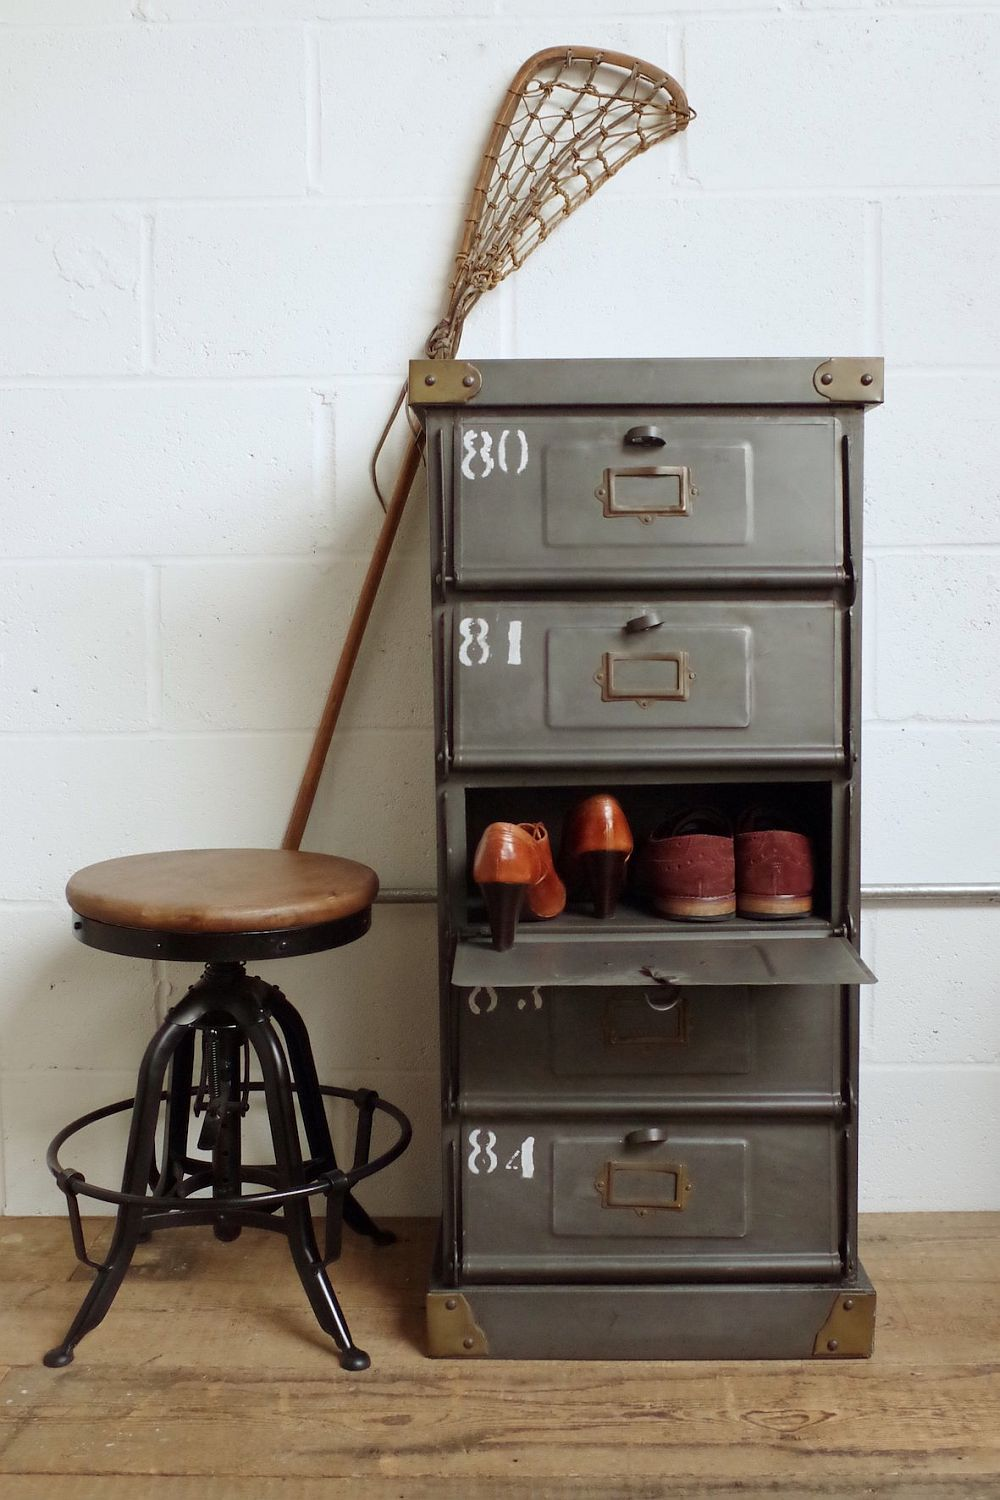 Industrial Mail Sorting Cabinet from VIncent and Barn